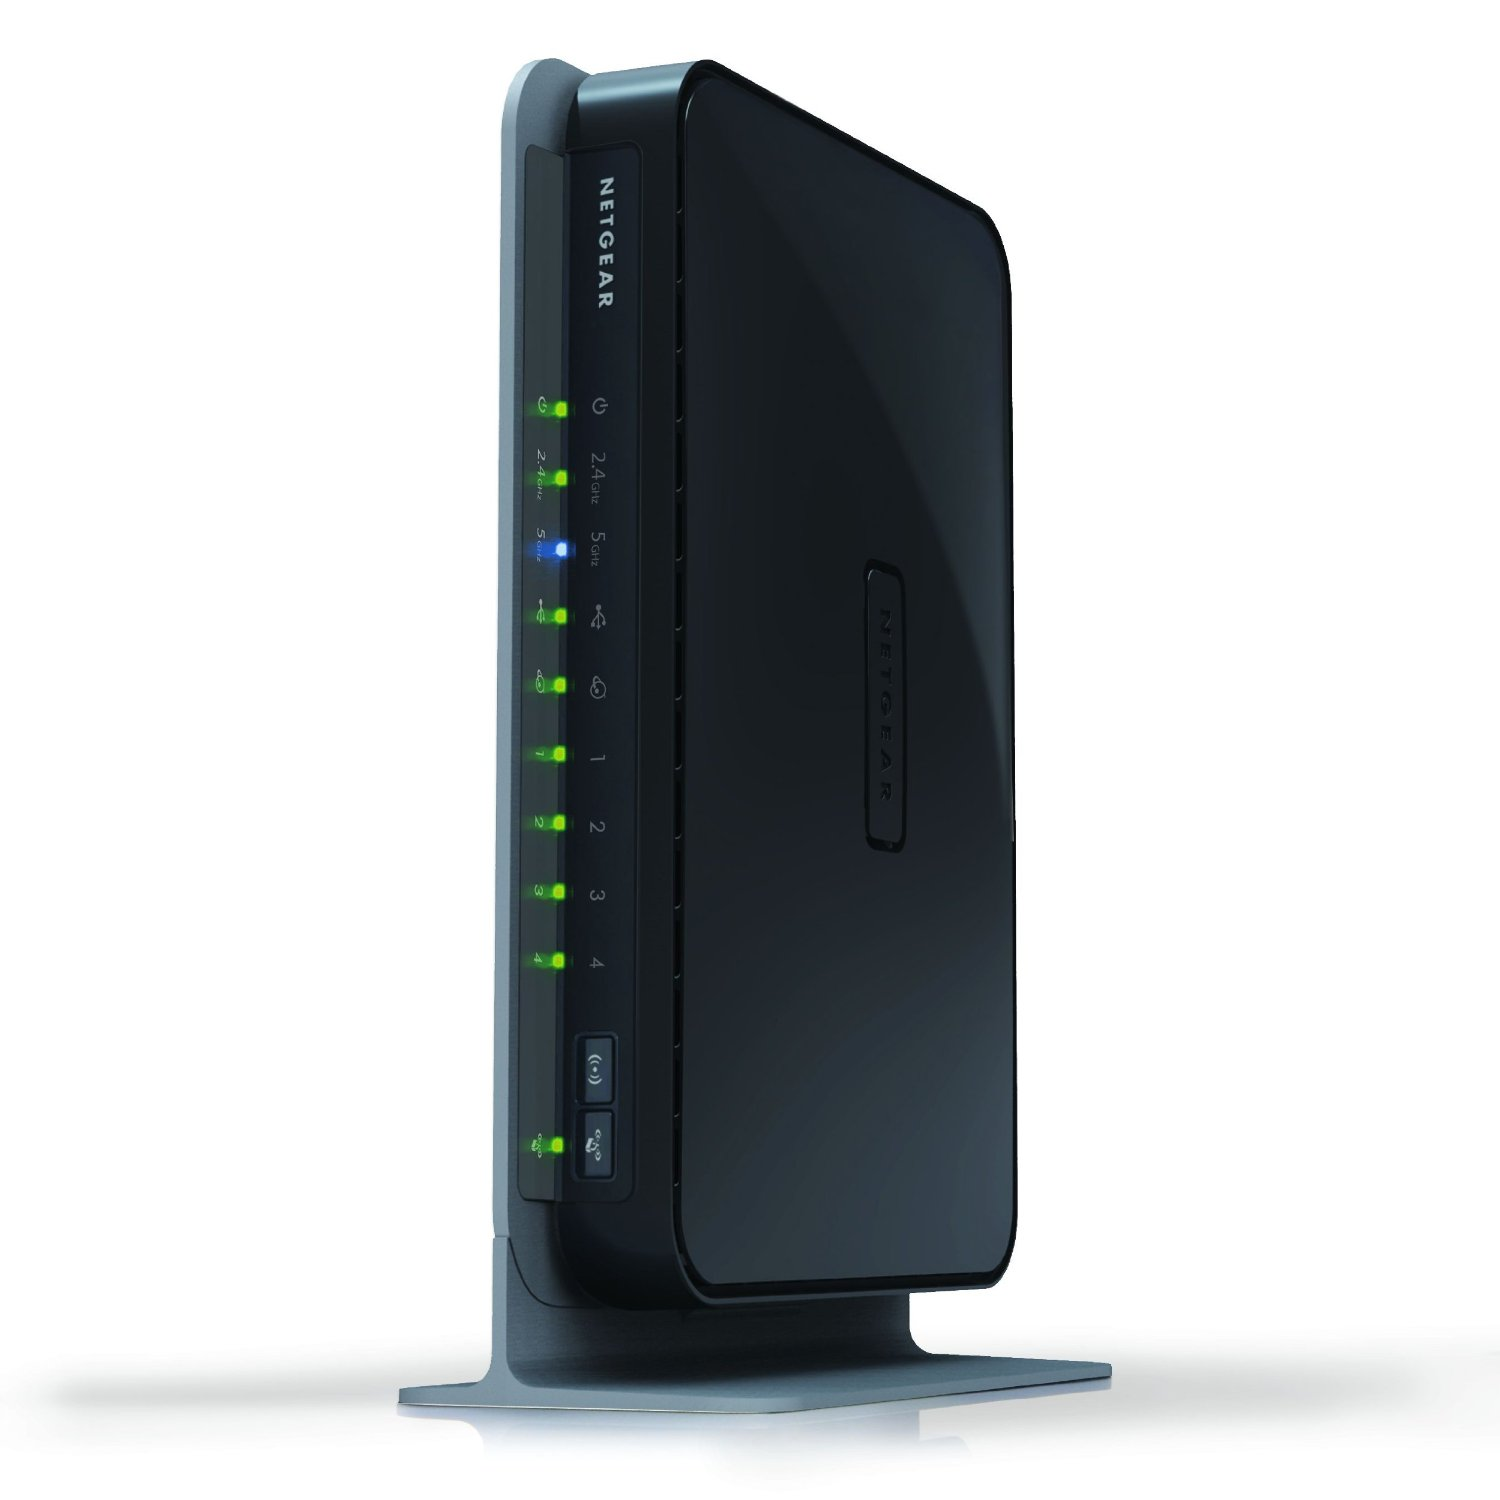 Broadband modem price in bangalore dating 6